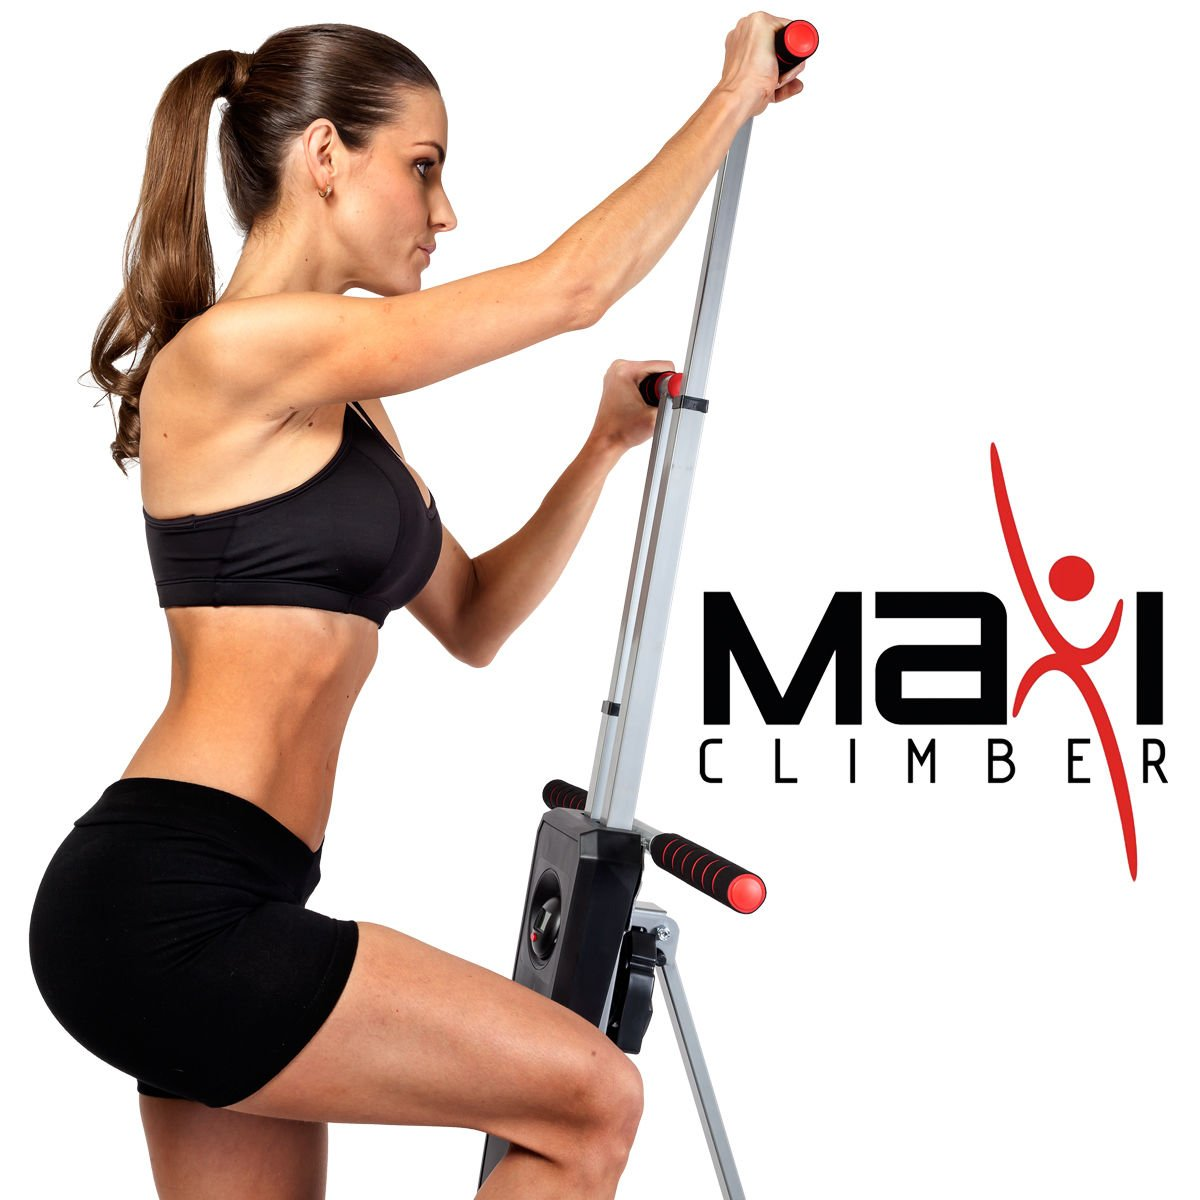 Maxi Climber Exercise Plan for Elders